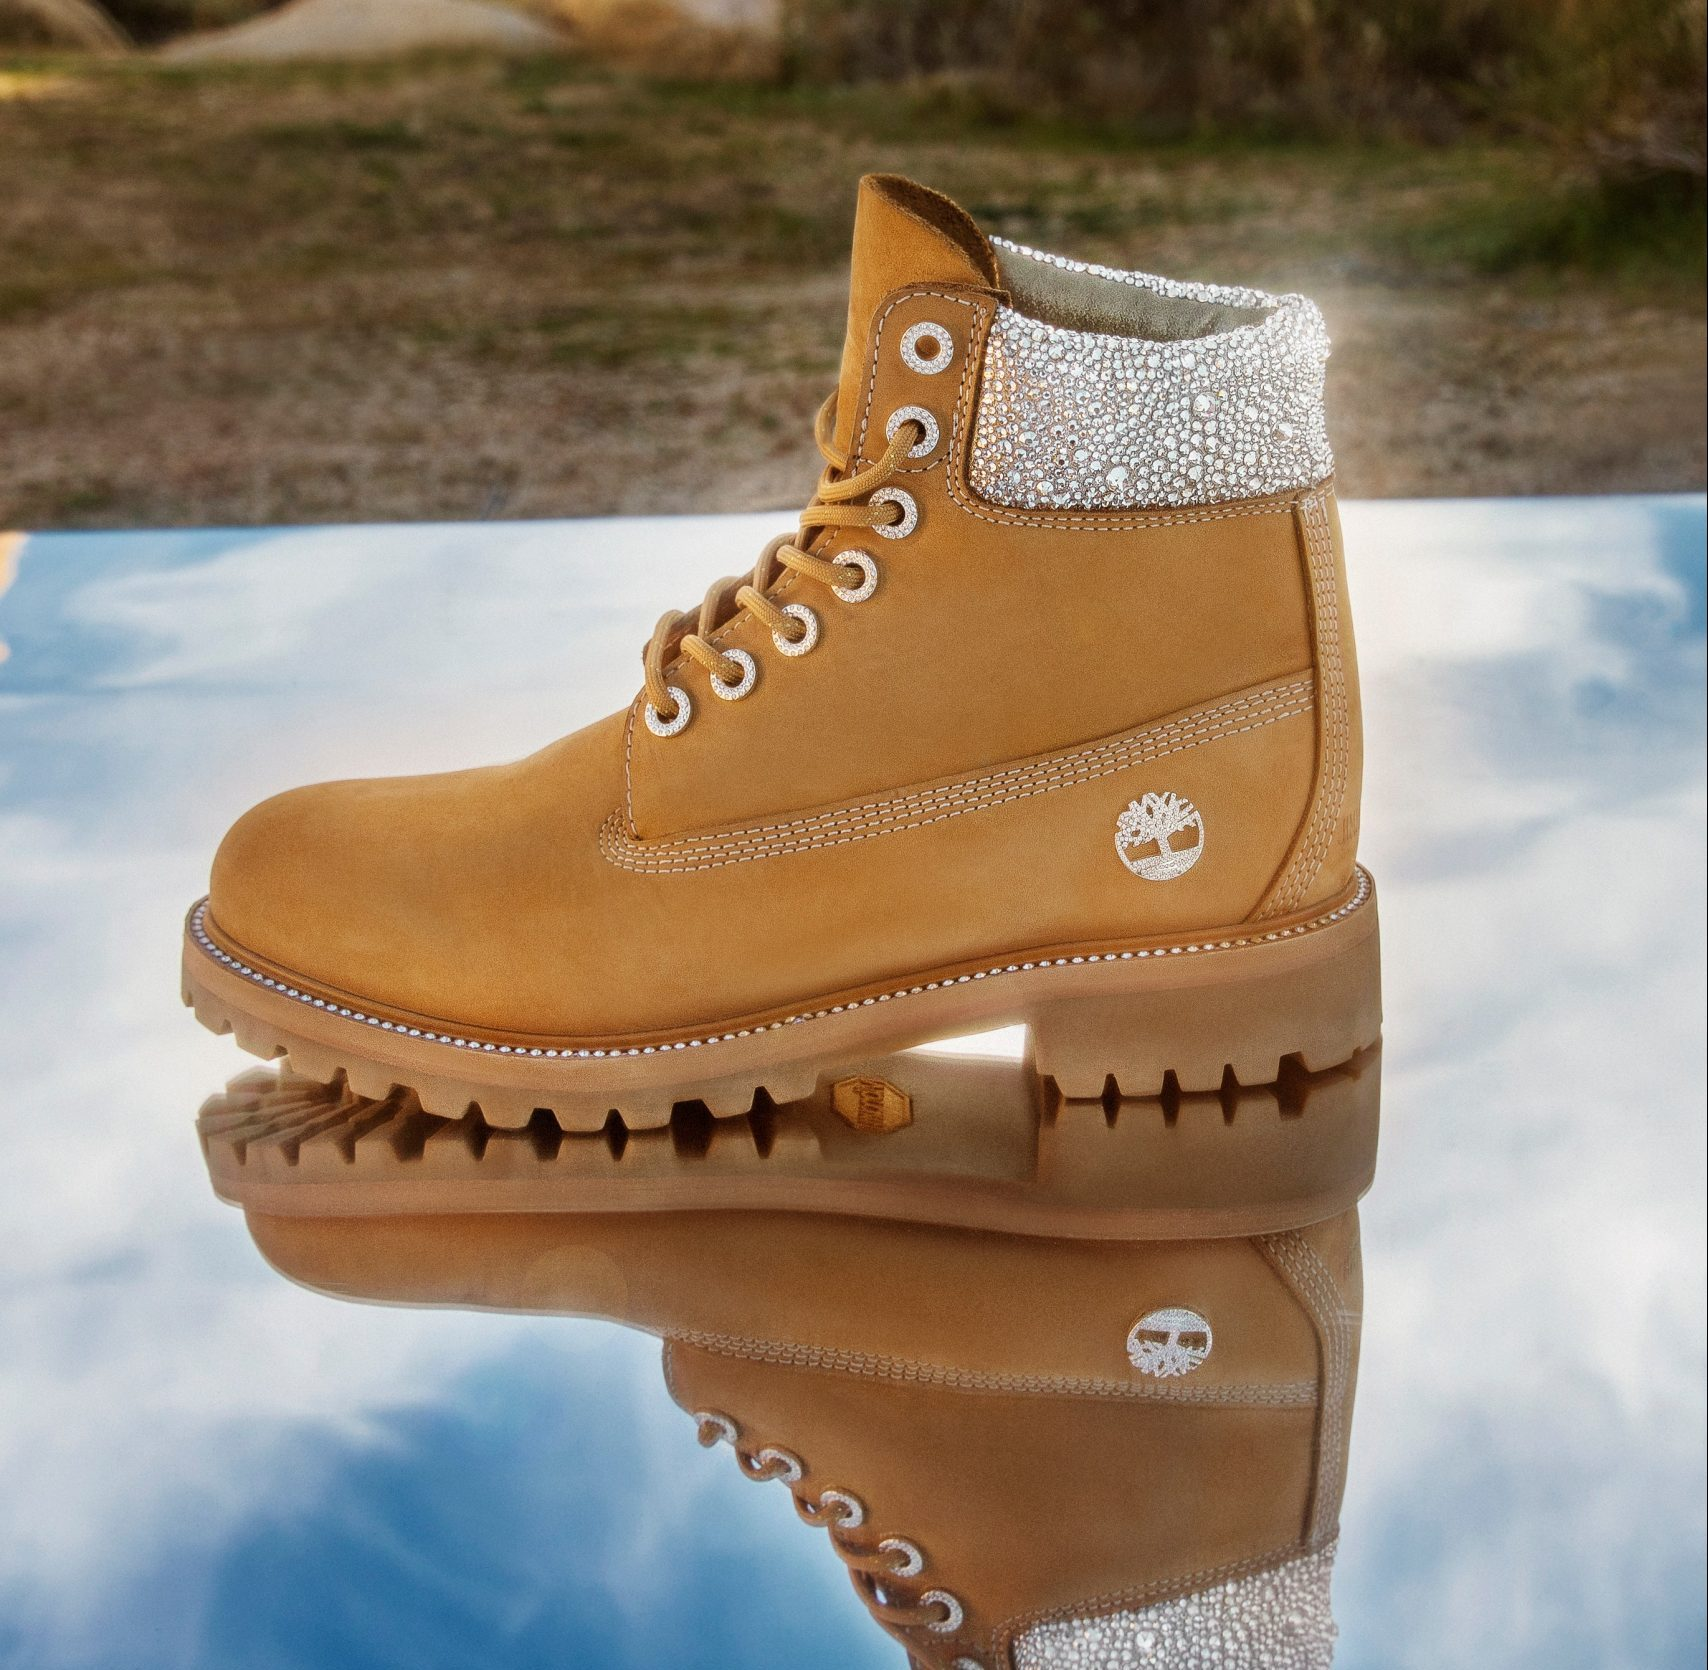 Jimmy Choo and Timberland to launch